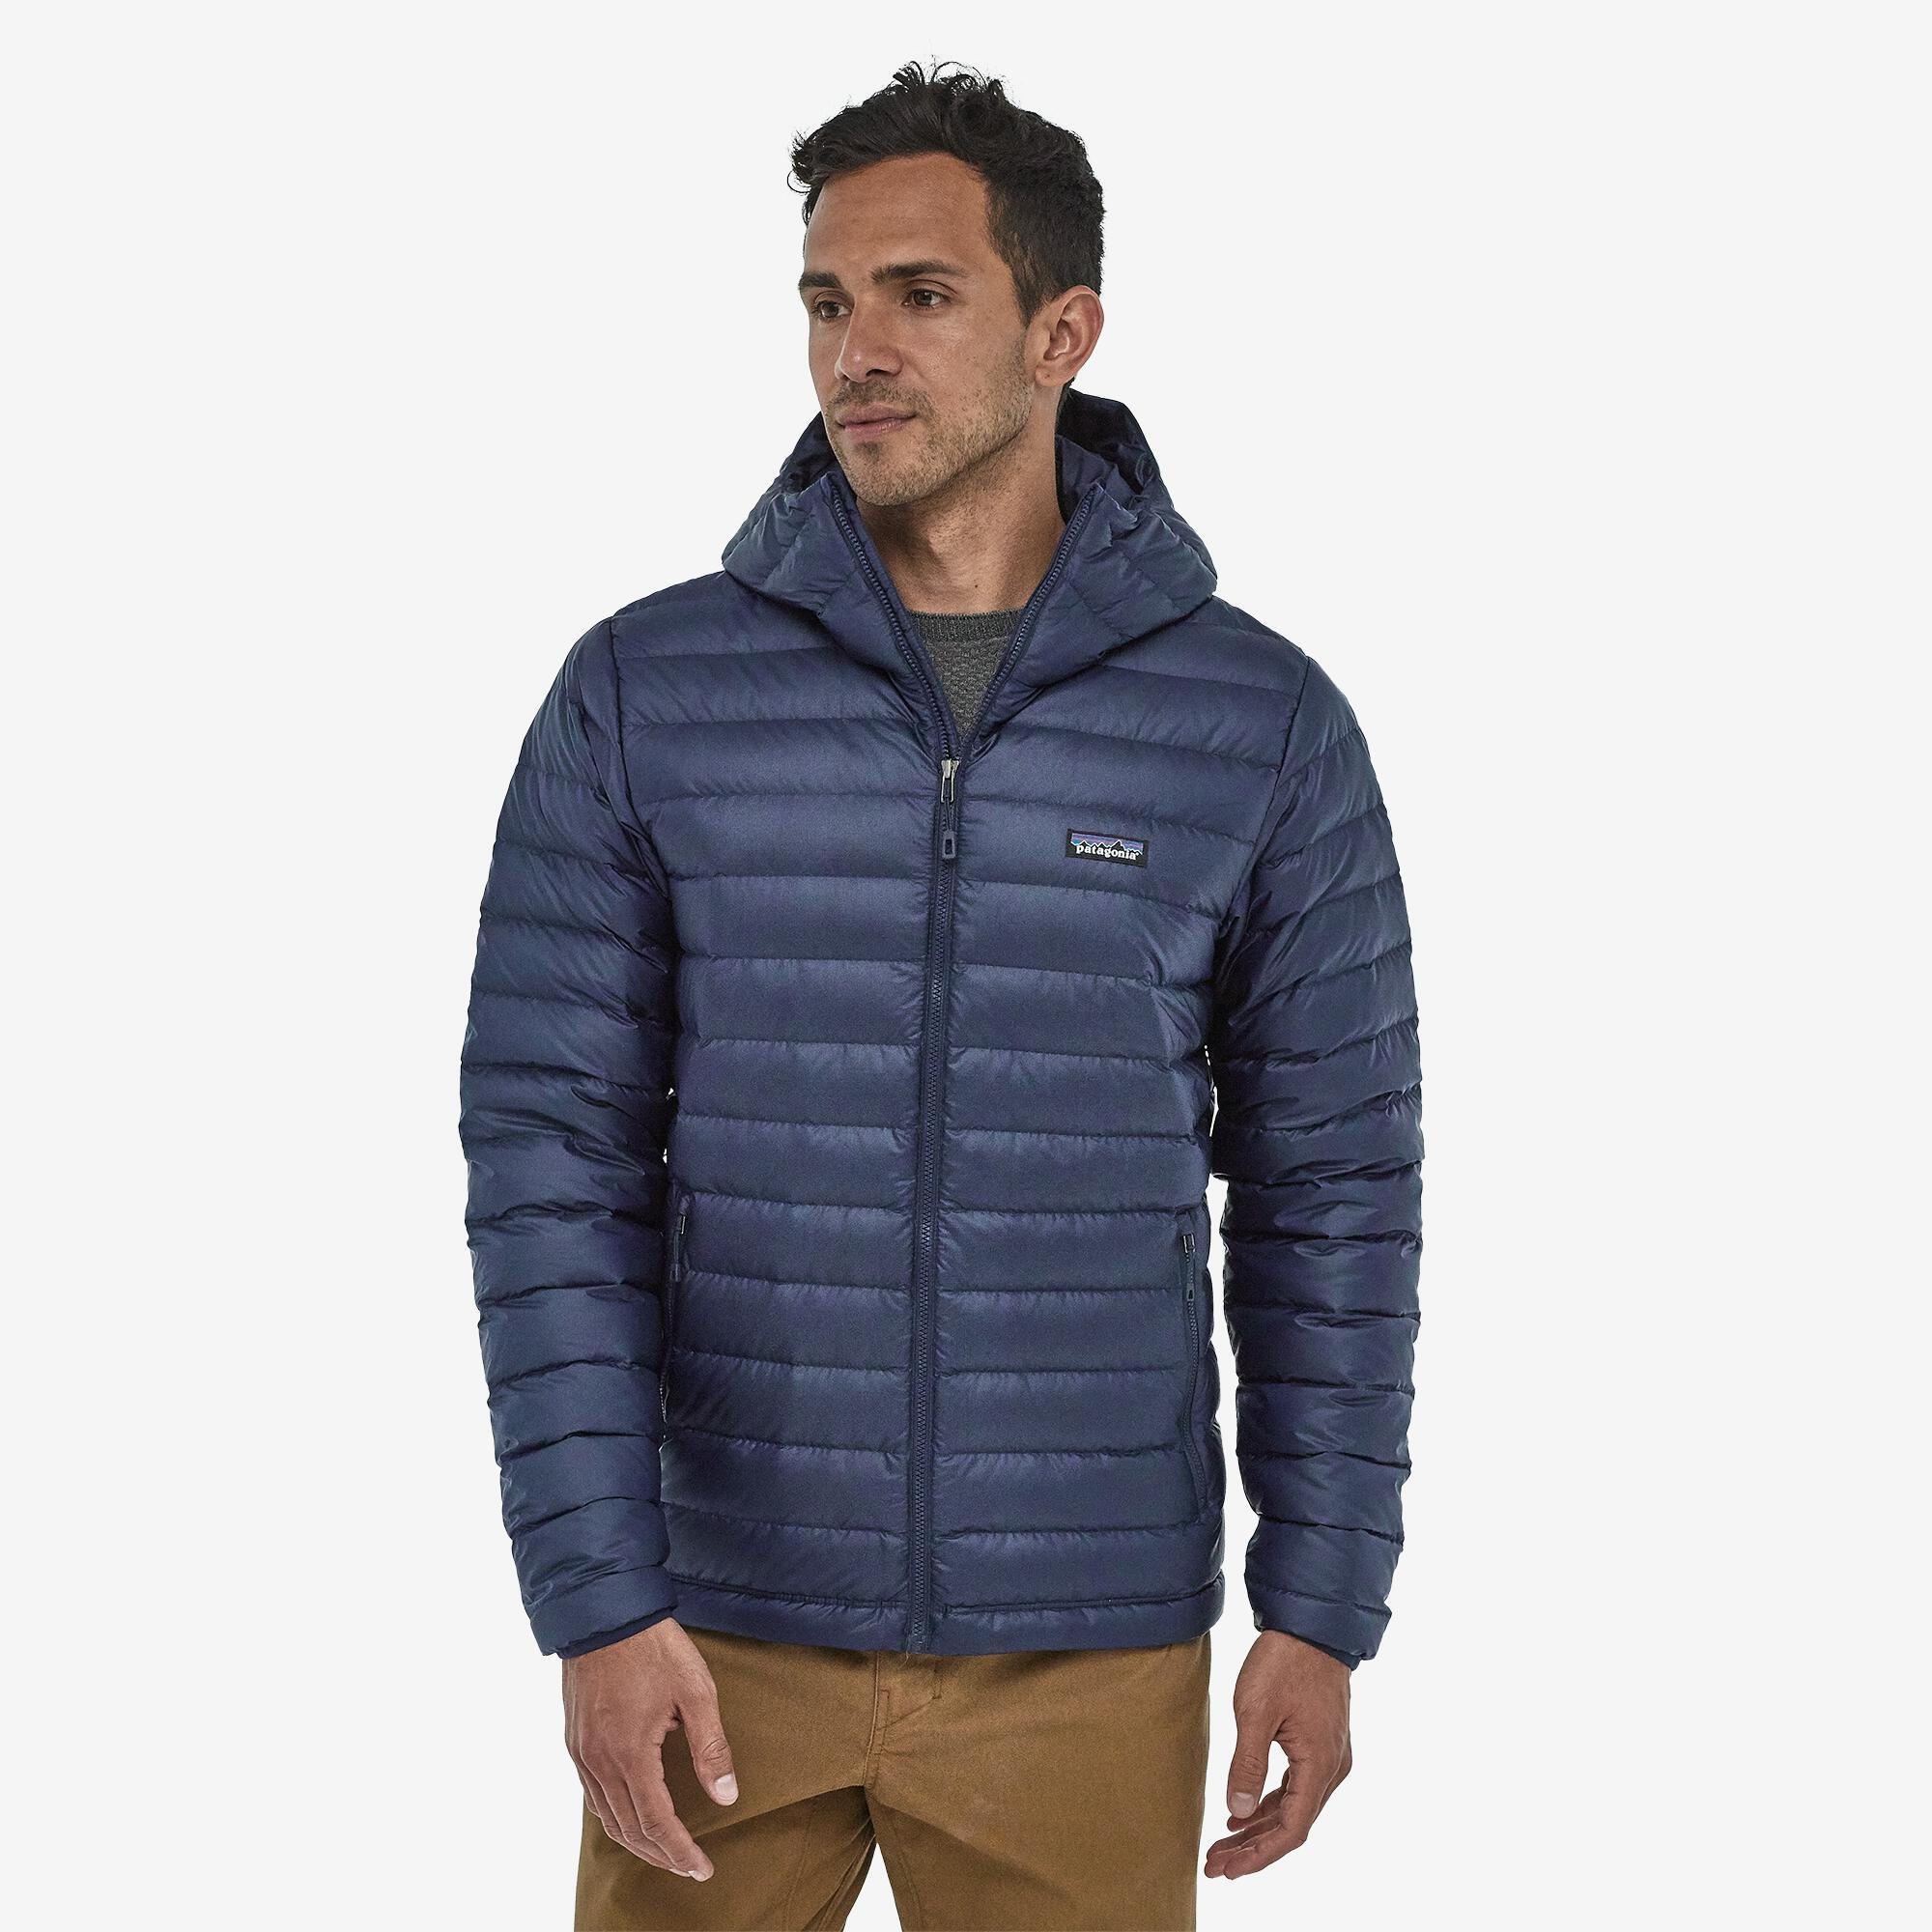 Patagonia - M's Down Sweater Hoody - Recycled Polyester - Weekendbee - sustainable sportswear